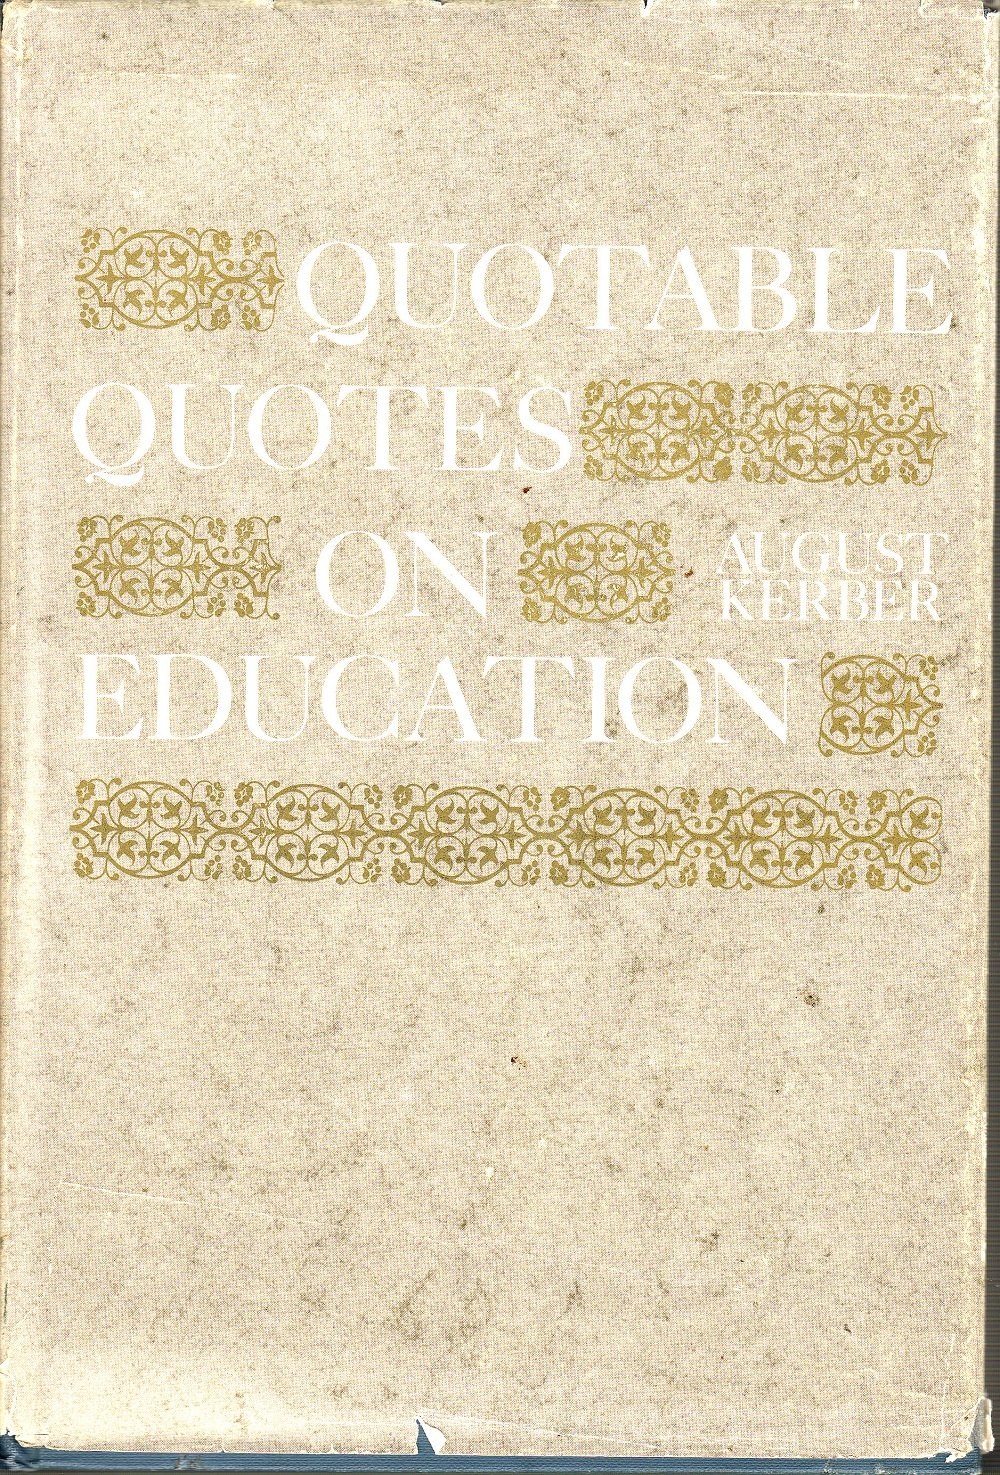 Quotable Quotes On Education Kerber August Amazon Books